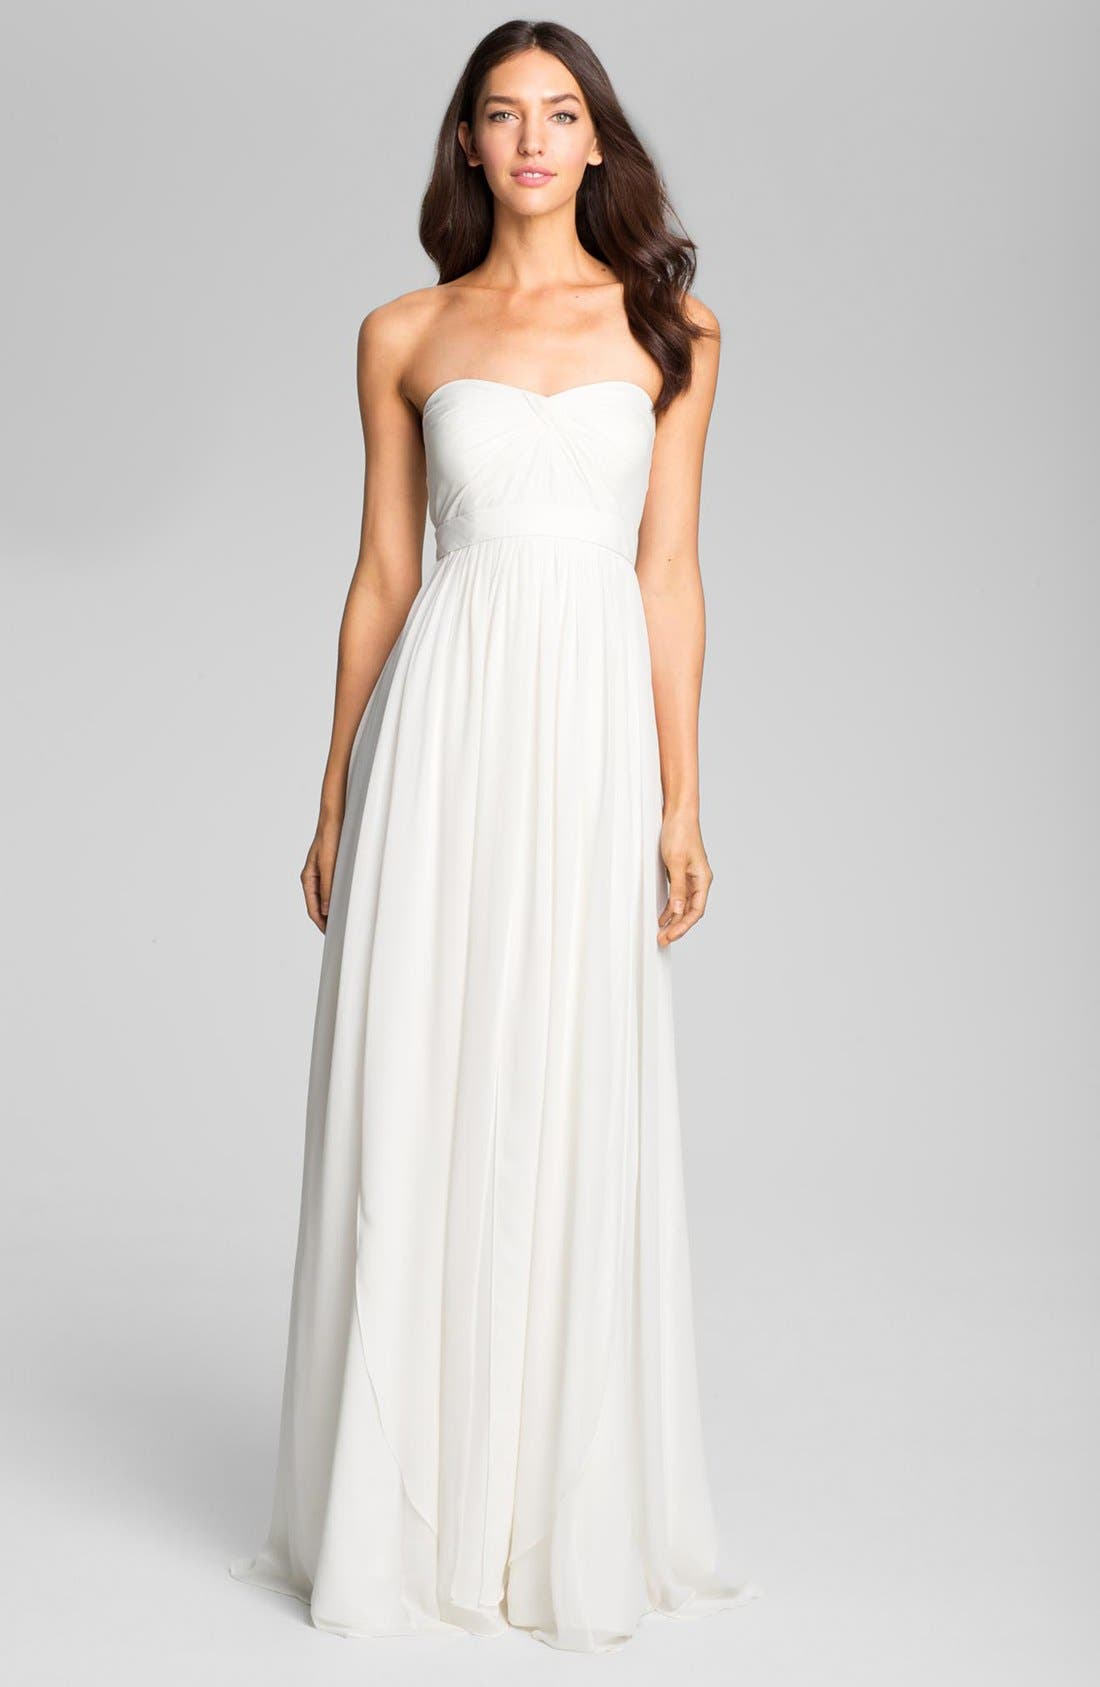 Main Image - Jenny Yoo 'Monarch' Sweetheart Neckline Layered Chiffon Gown